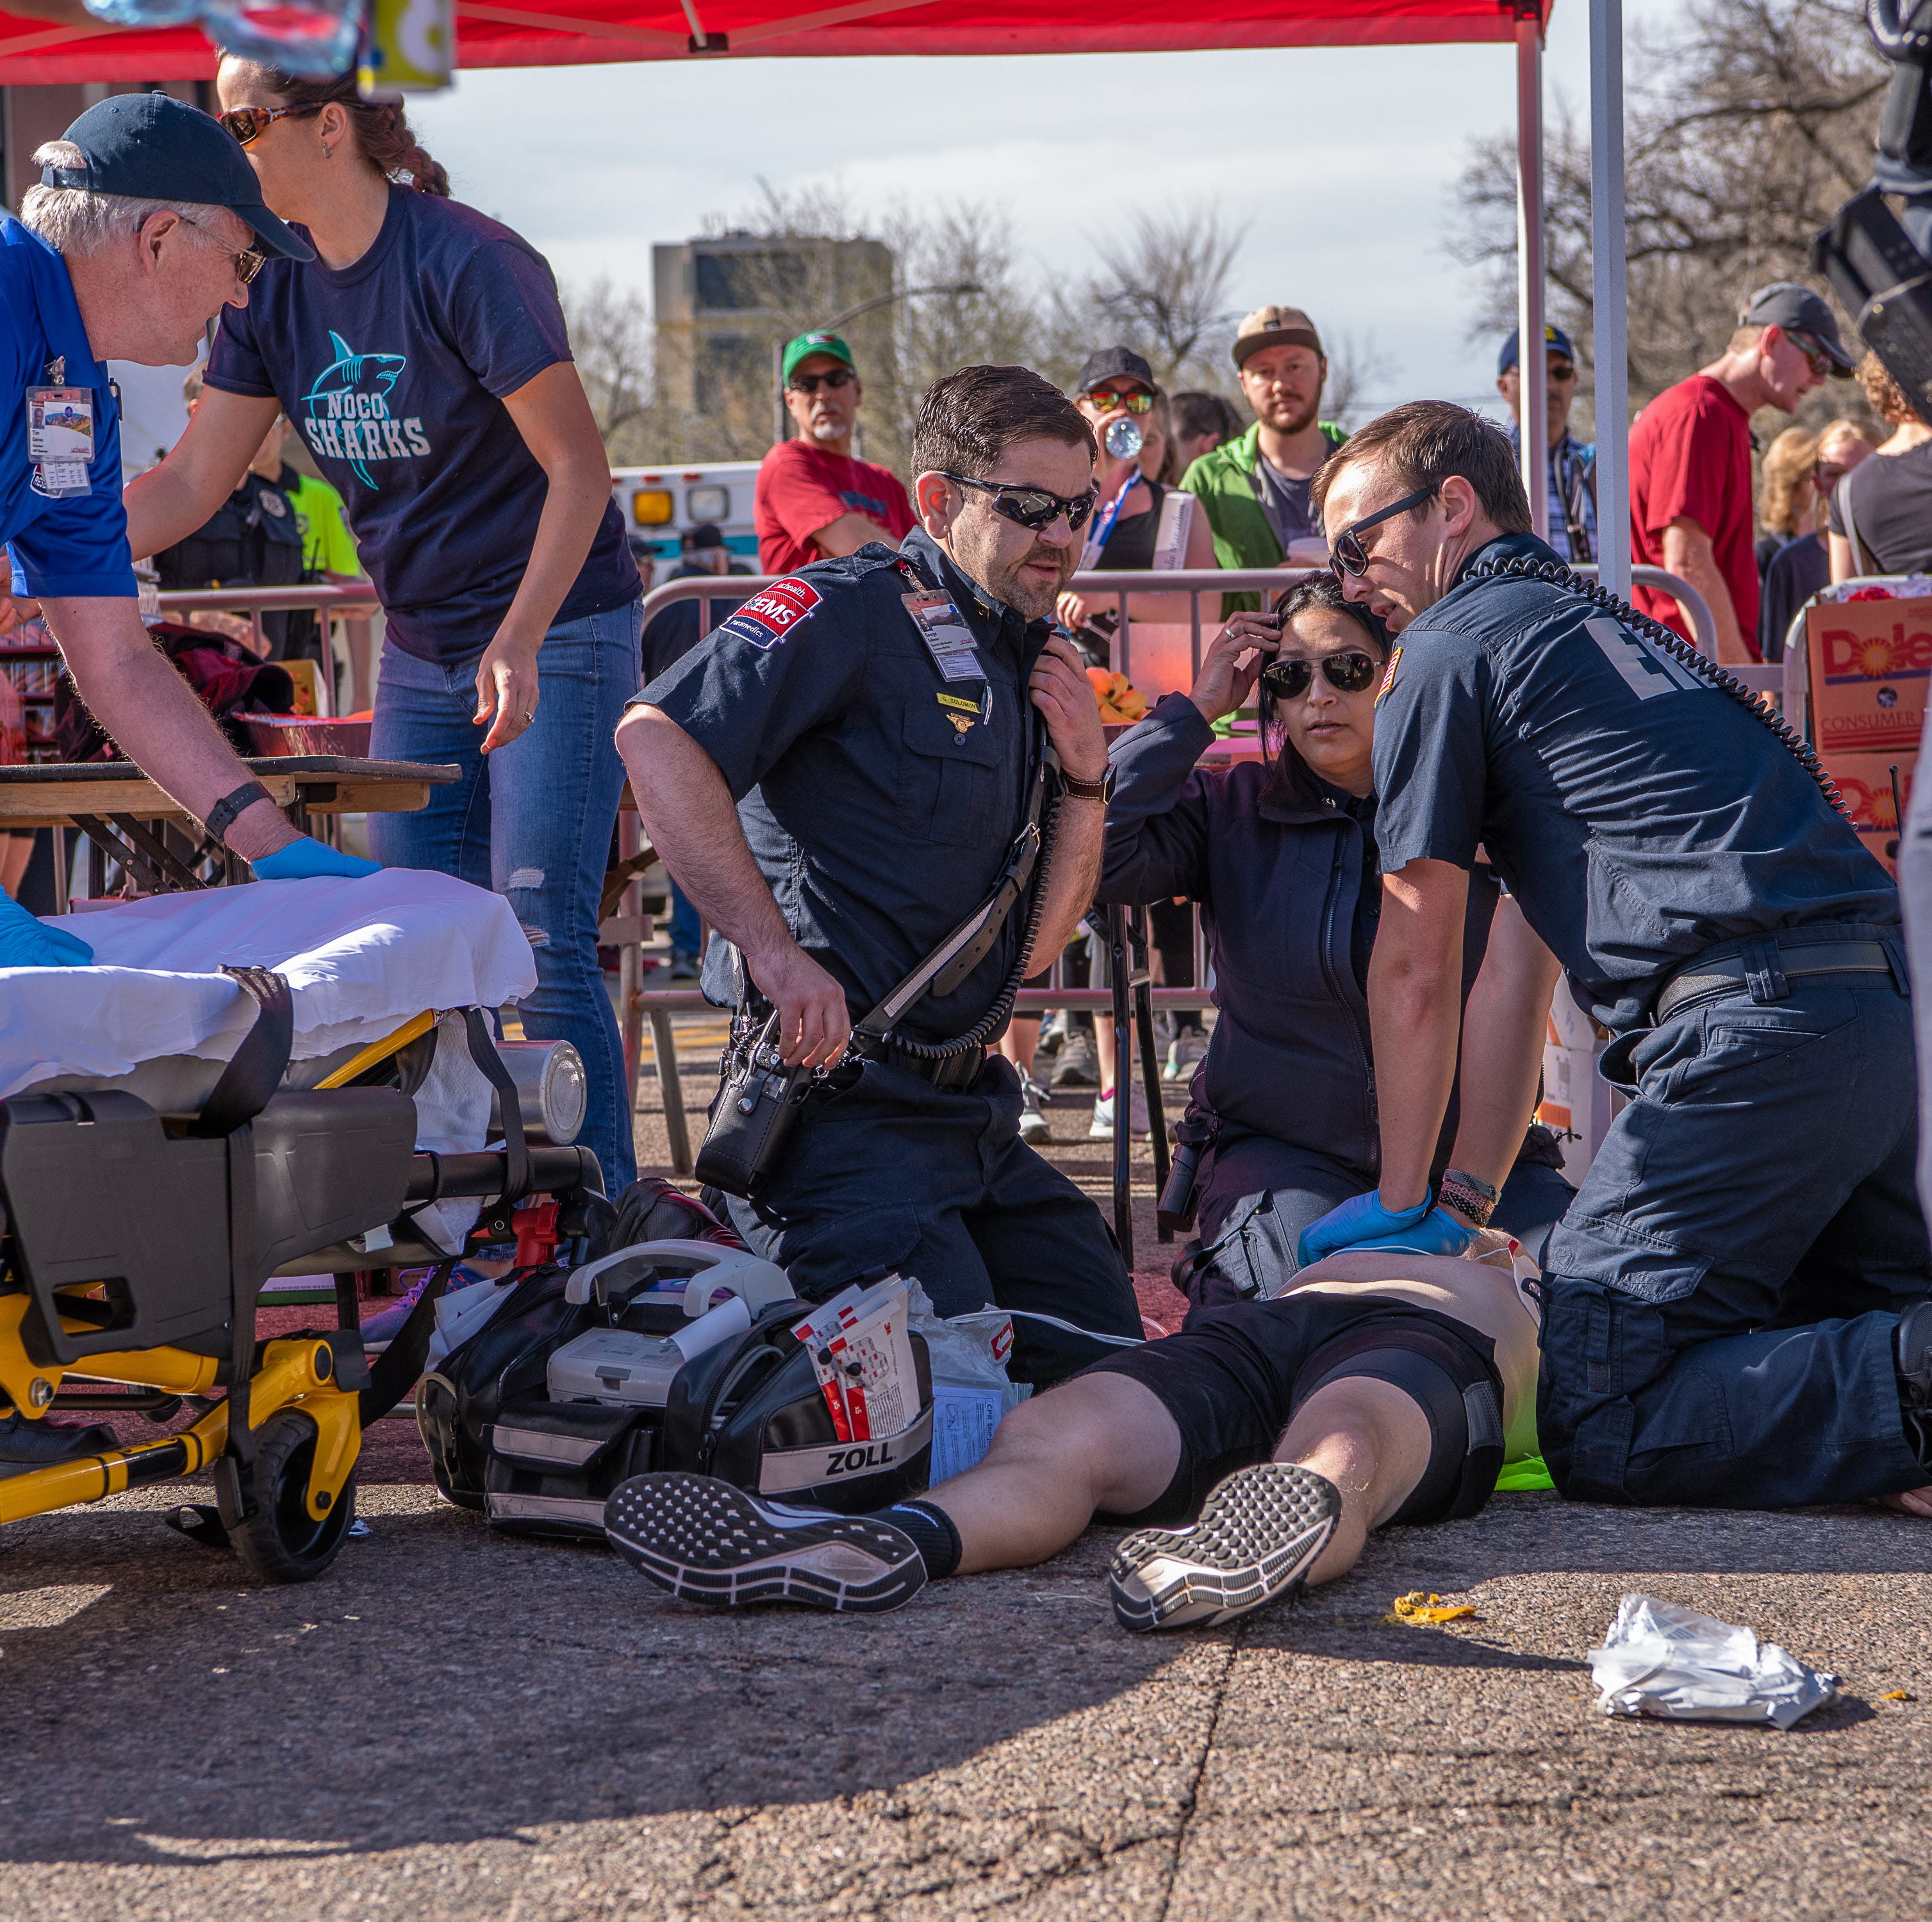 CPR at finish line saves life of 24-year-old Colorado half-marathoner who went into cardiac arrest